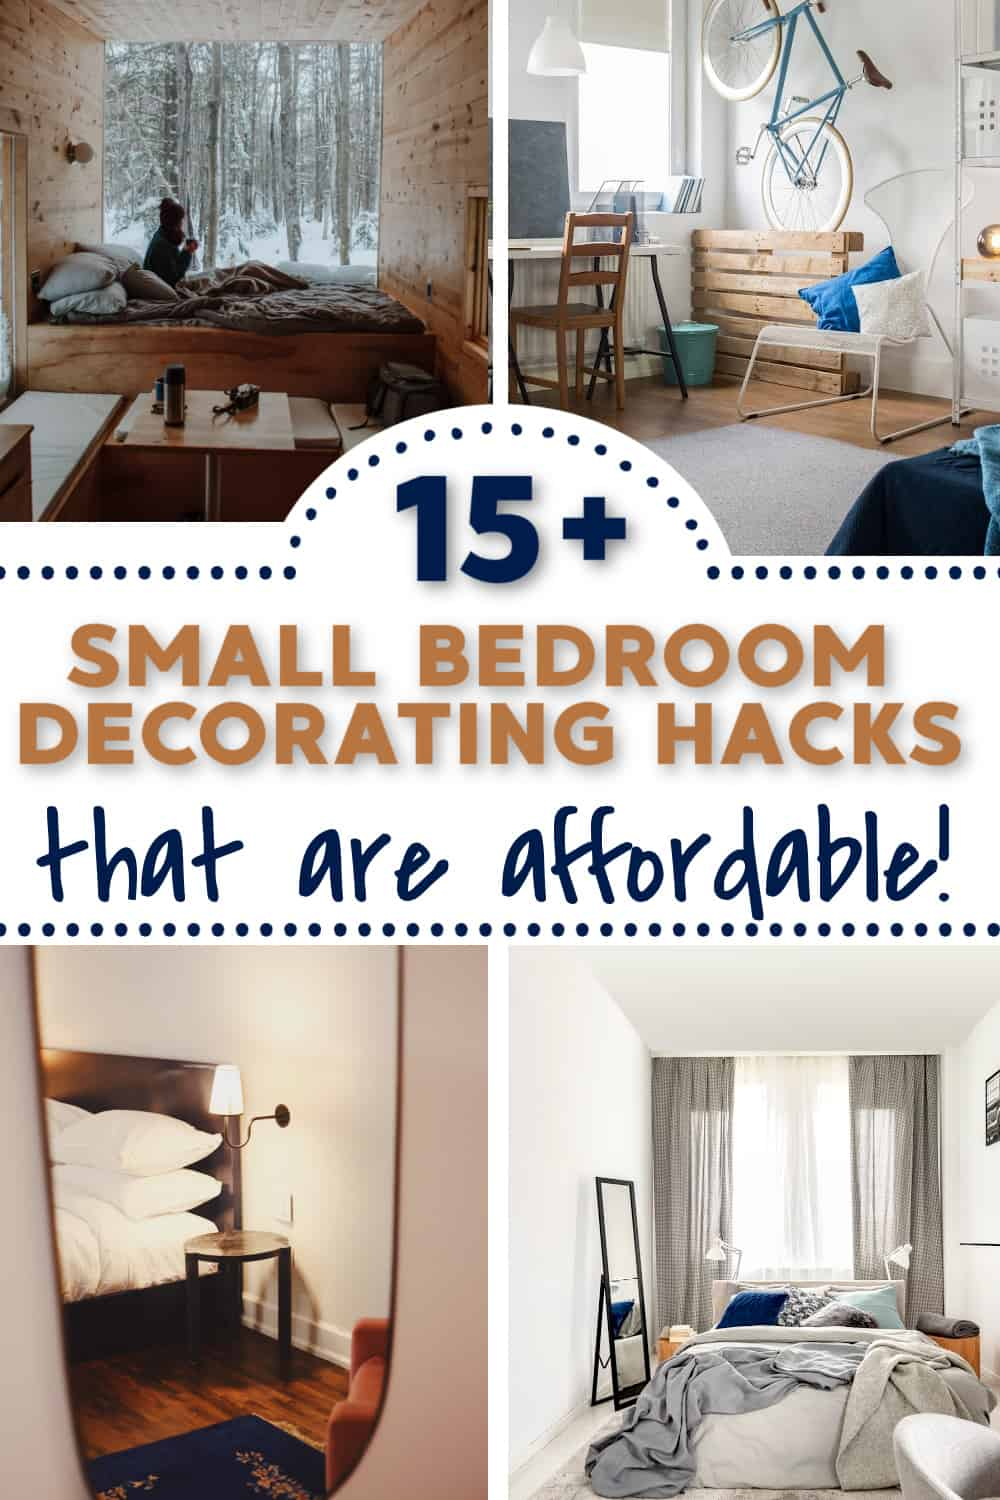 How can I decorate my room for cheap?